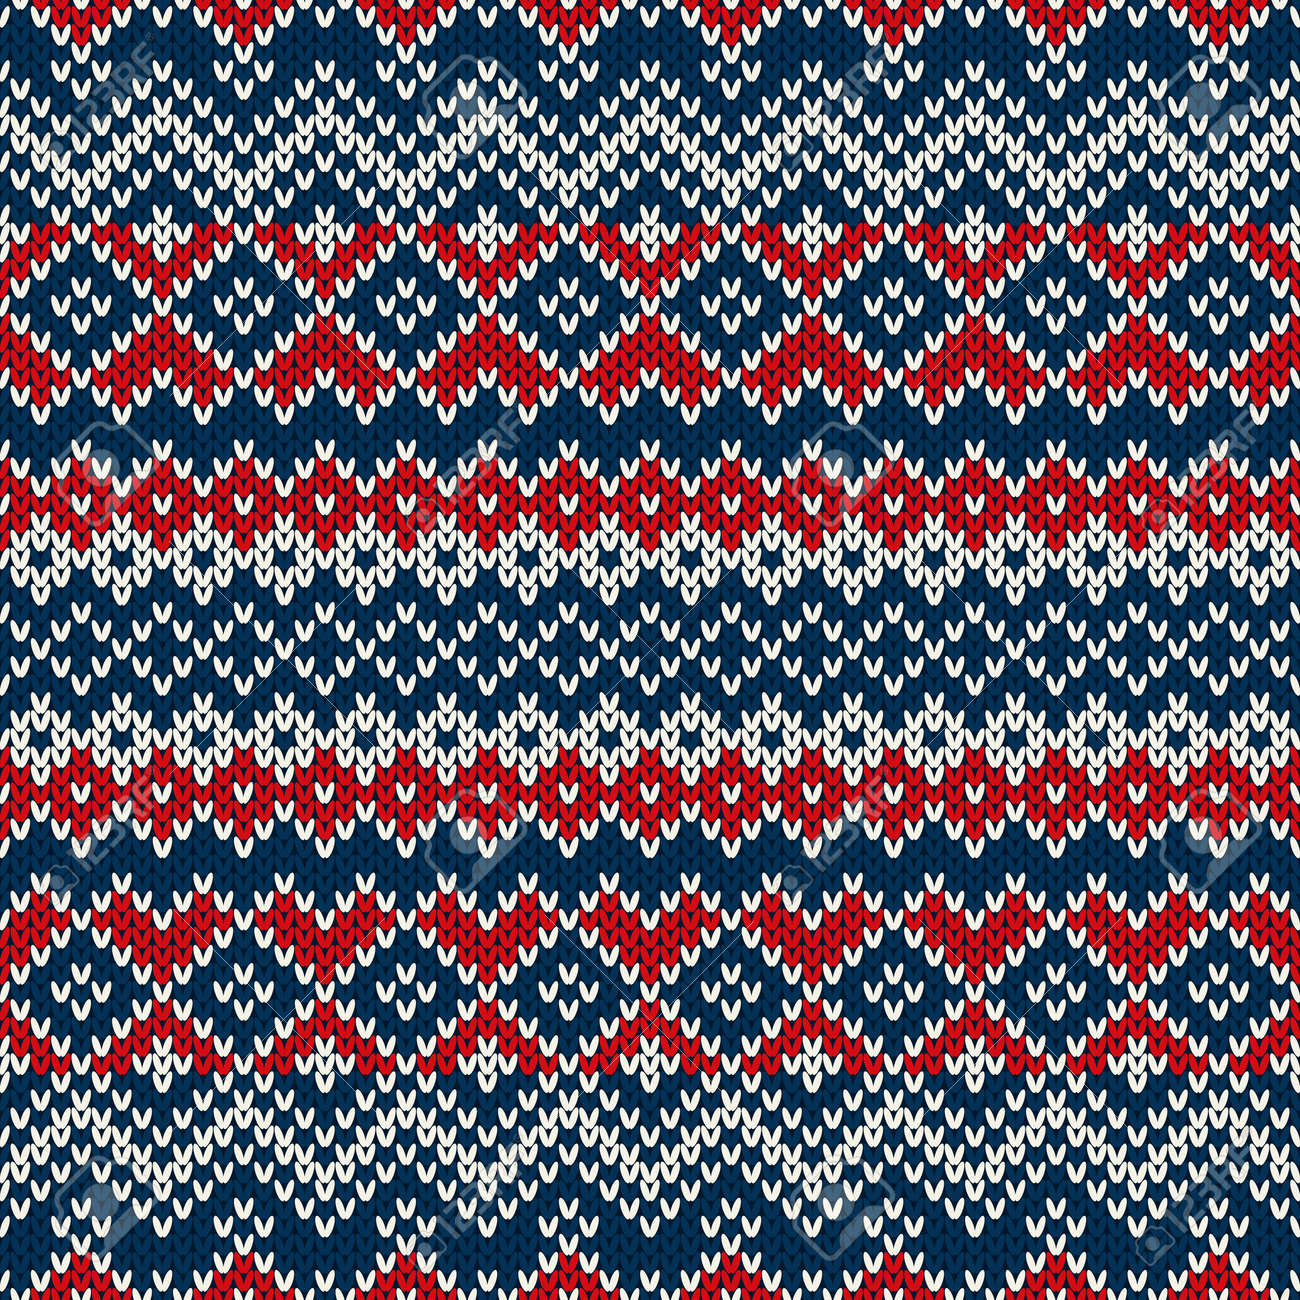 Nordic Traditional Fair Isle Style Seamless Knitted Pattern Royalty ...